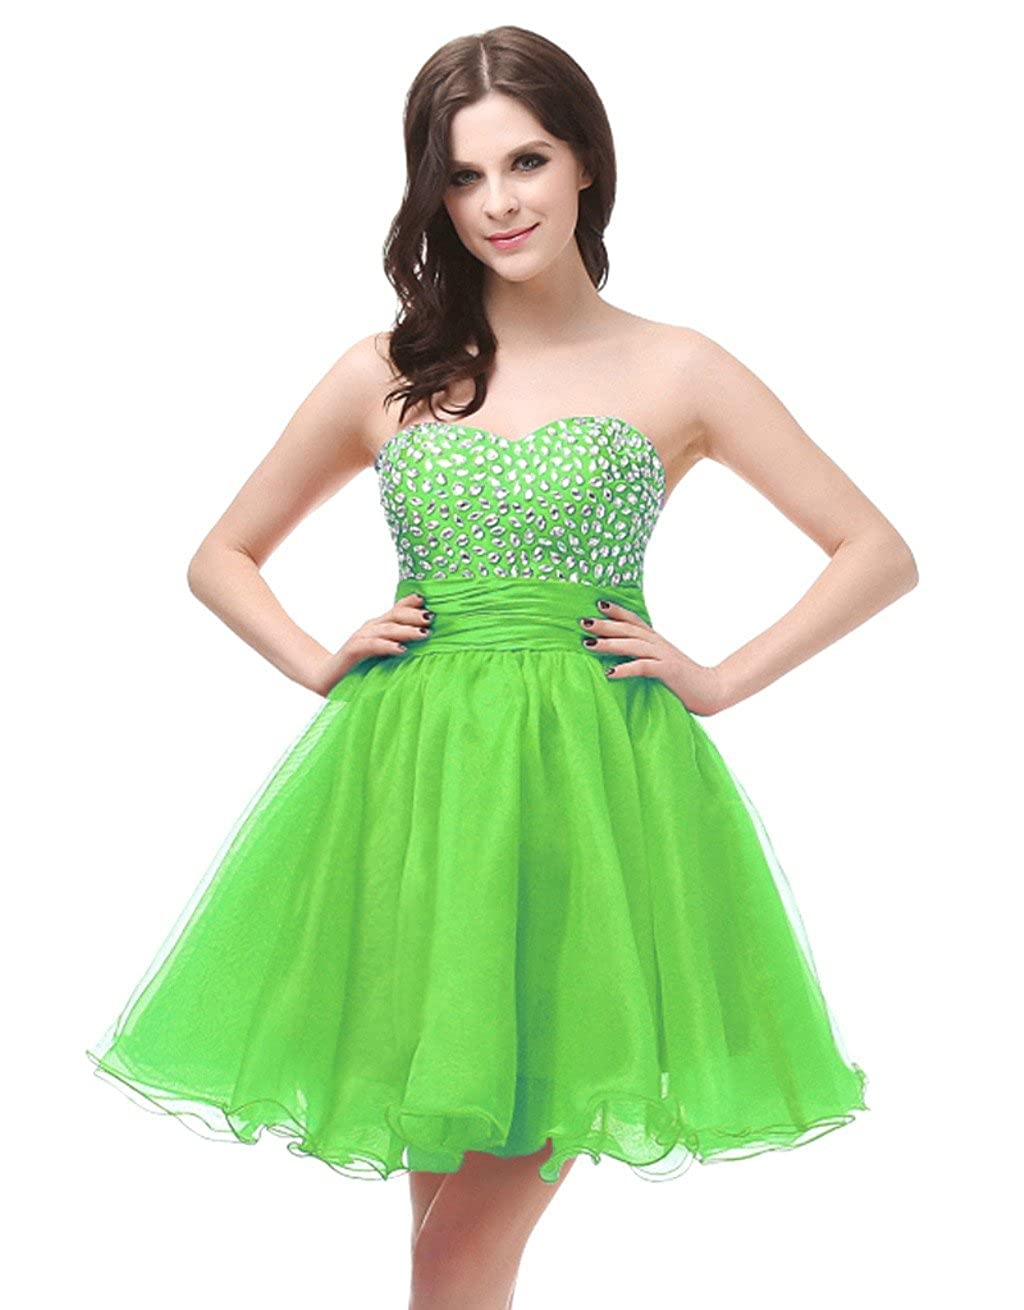 Lemon Green Vantexi Women's Strapless Short Prom Homecoming Dress Party Gown